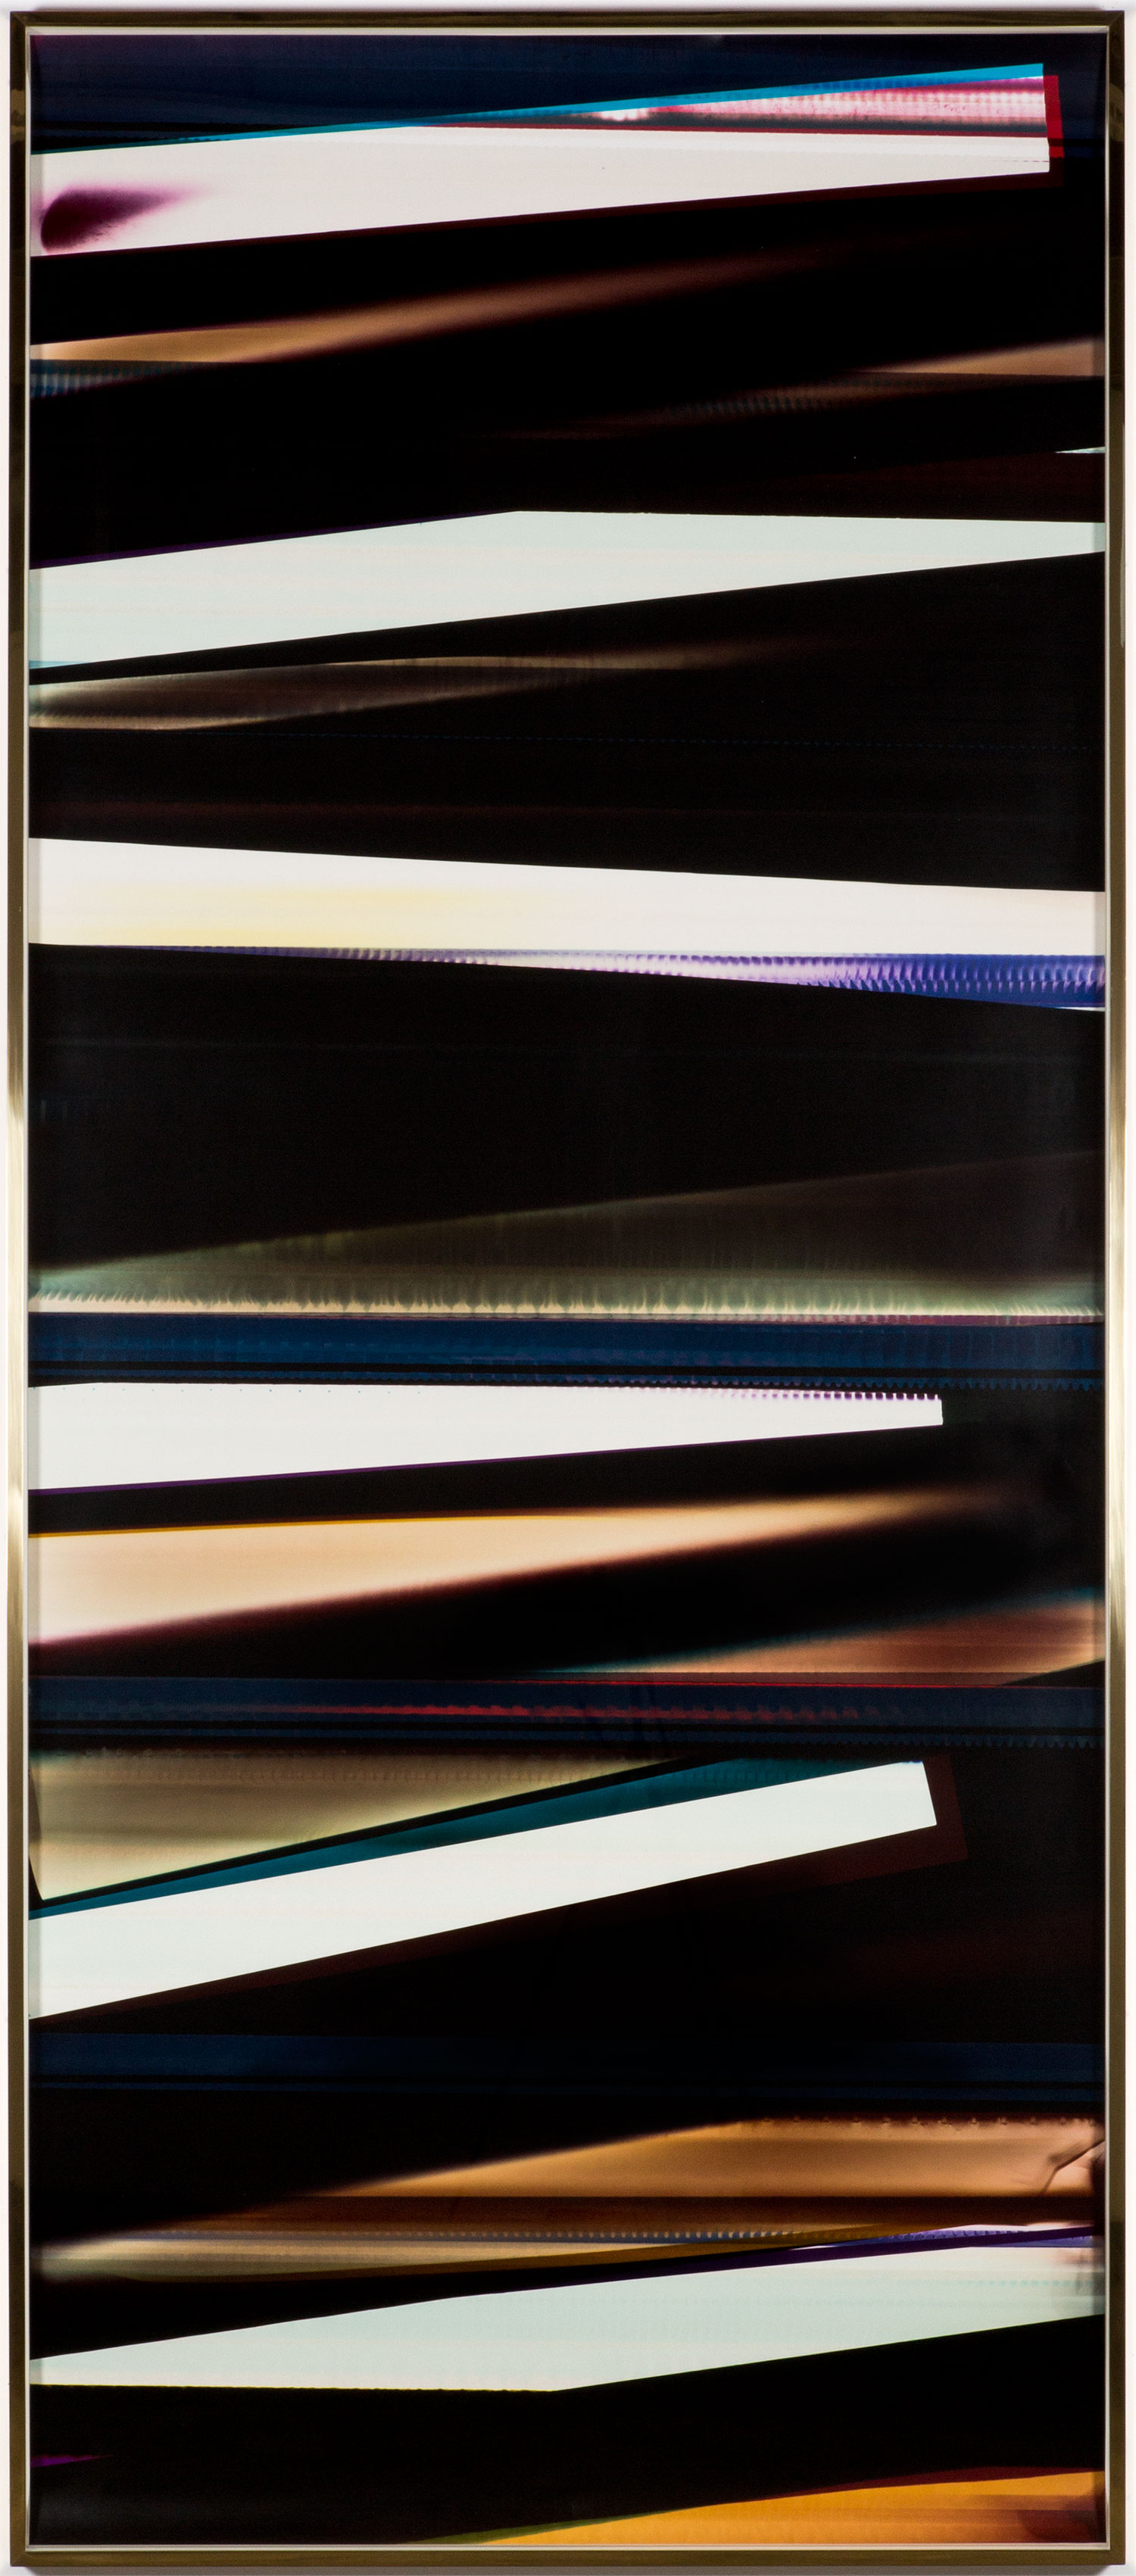 RA4 Contact Print / Processor Stall [Black Curl (9:6/MYC/Six Magnet: Los Angeles, California, July 15, 2014, Fuji Color Crystal Archive Super Type C, Em. No. 107-116, 75414), Kreonite KM IV 5225 RA4 Color Processor, Ser. No. 00092174]    2016   Color photographic paper  119 3/4 x 51 1/2 inches   Automat, 2016